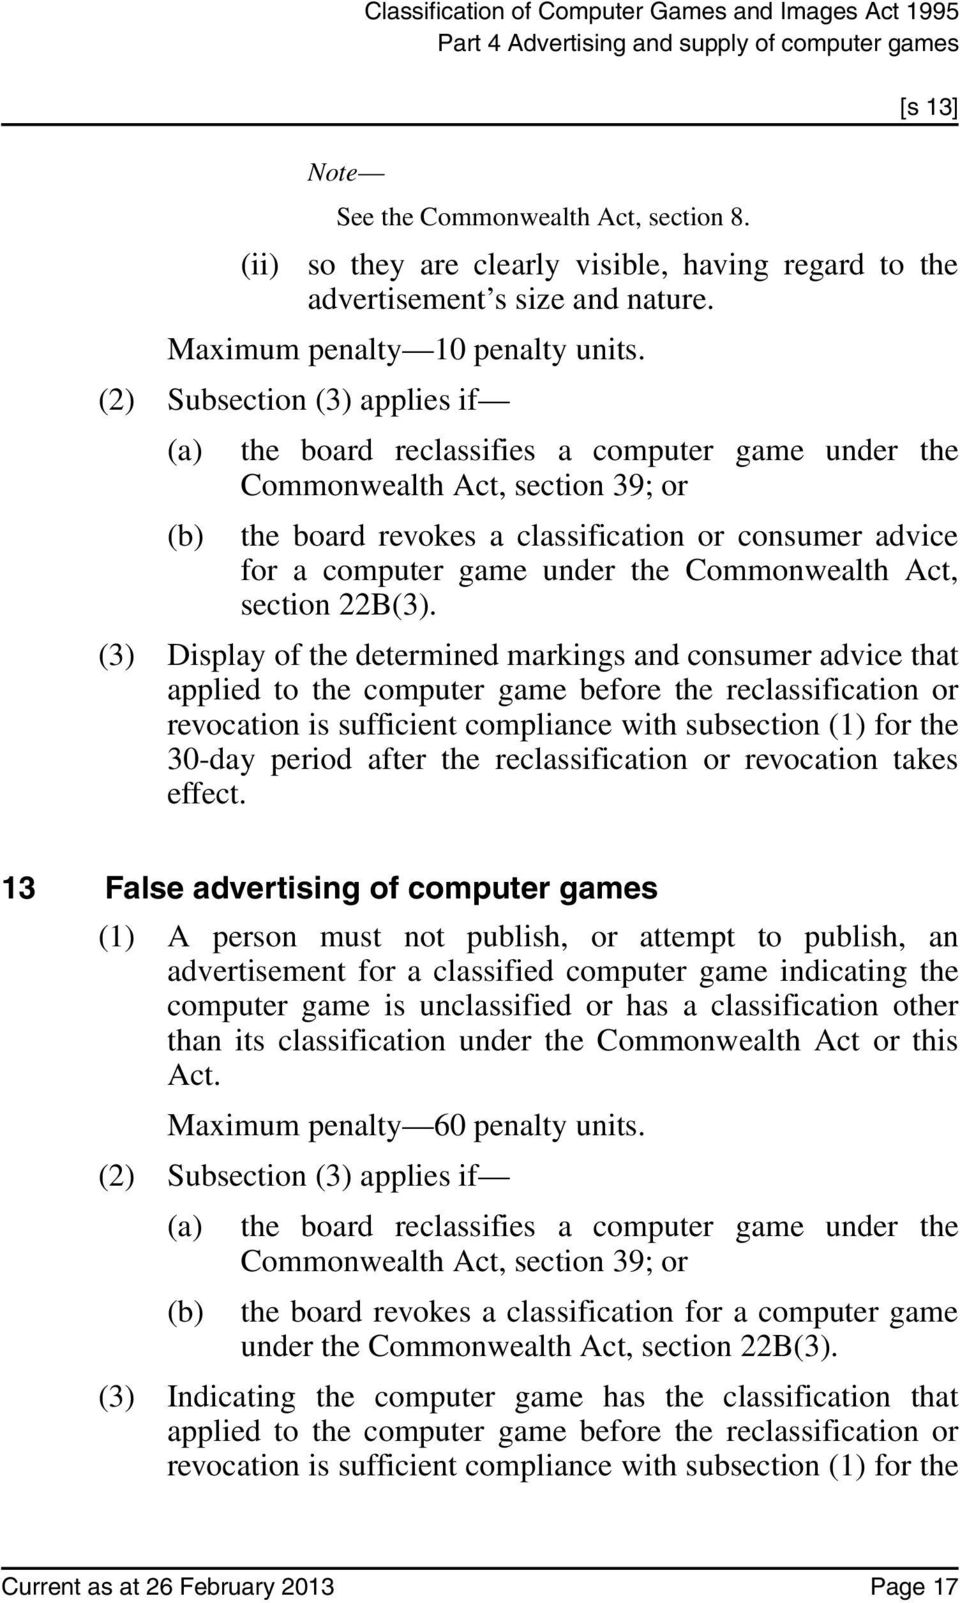 (2) Subsection (3) applies if (a) the board reclassifies a computer game under the Commonwealth Act, section 39; or (b) the board revokes a classification or consumer advice for a computer game under